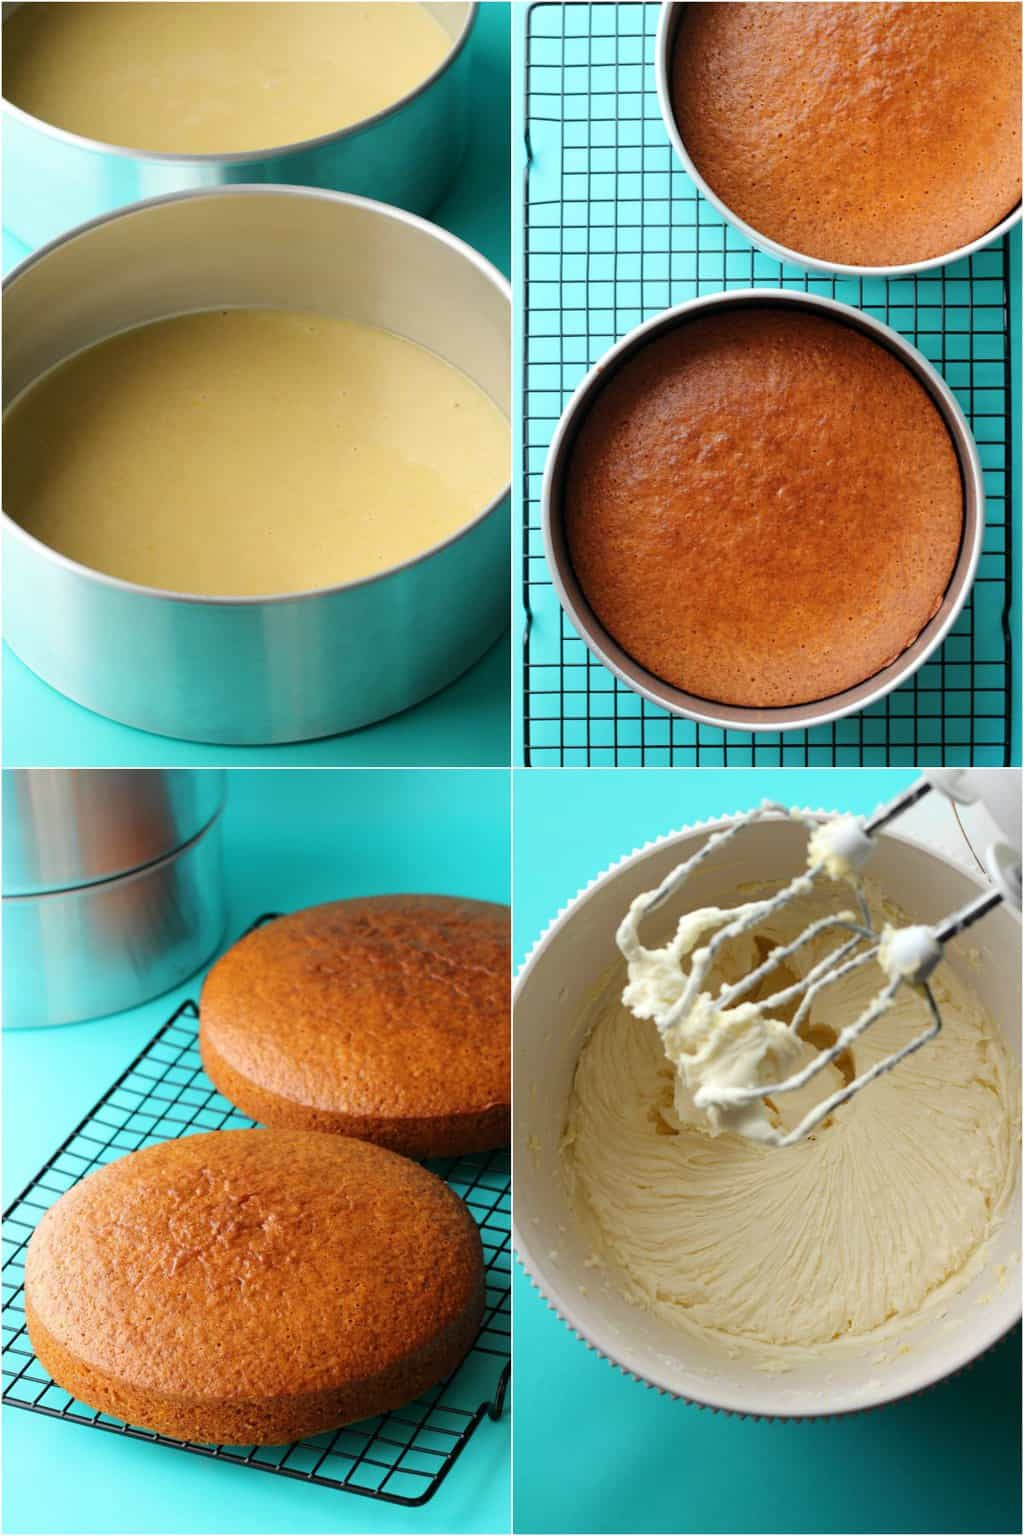 Step by step process photo collage of making a vegan lemon cake.